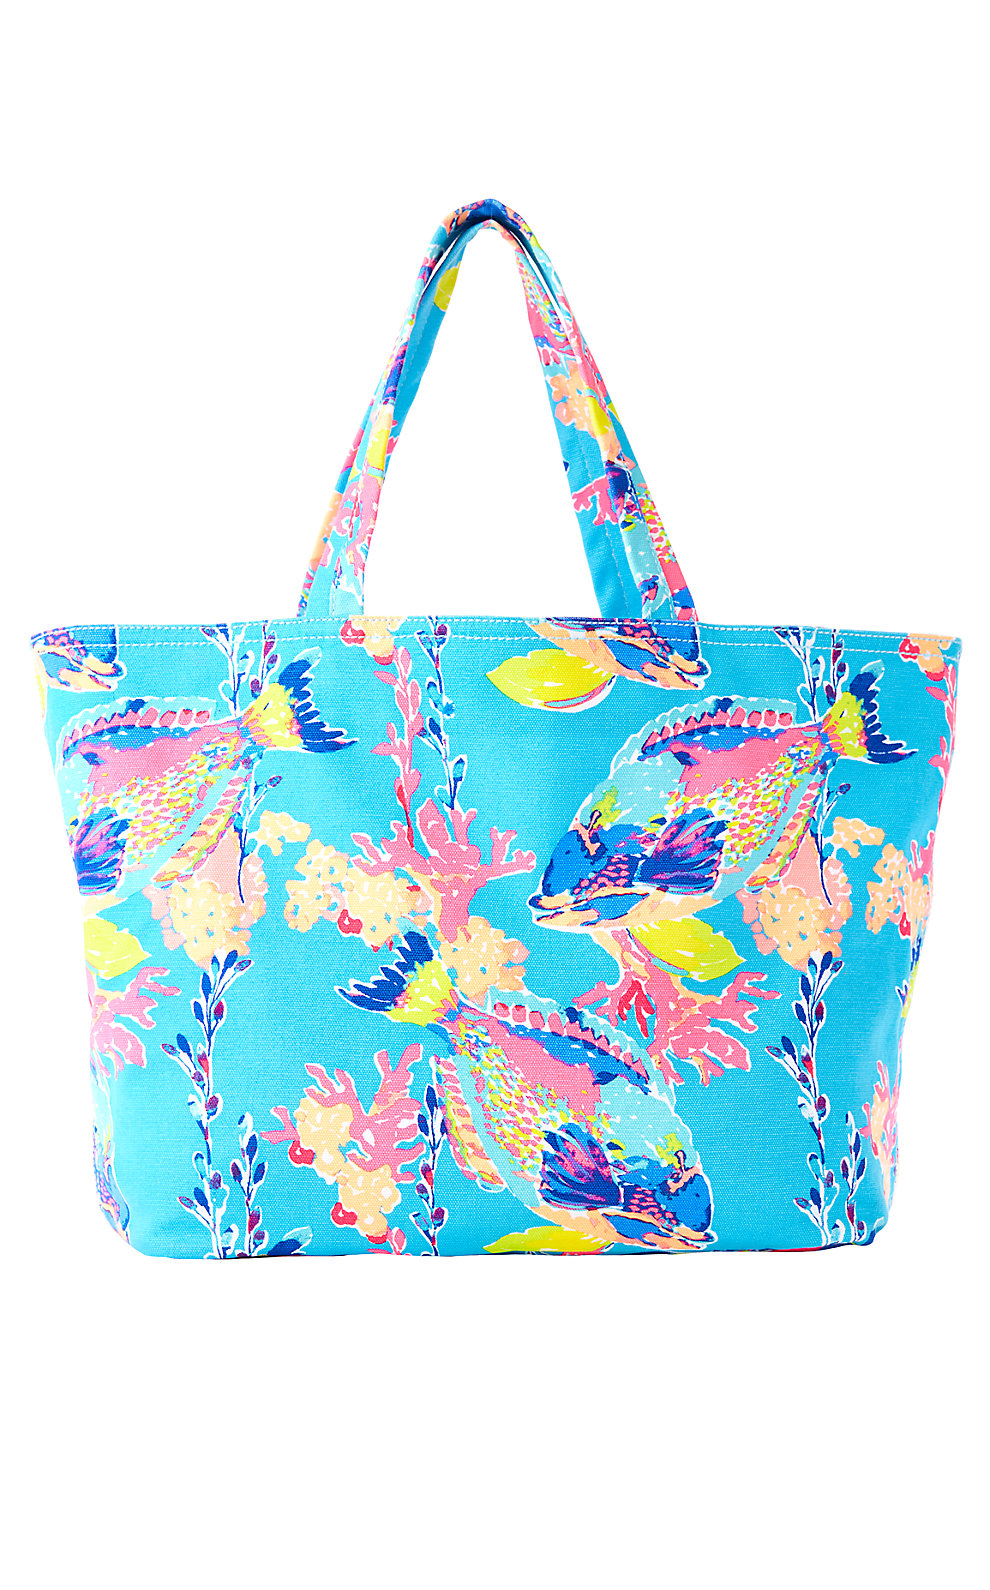 Lilly Pulitzer Palm Beach Tote - Sandstorm